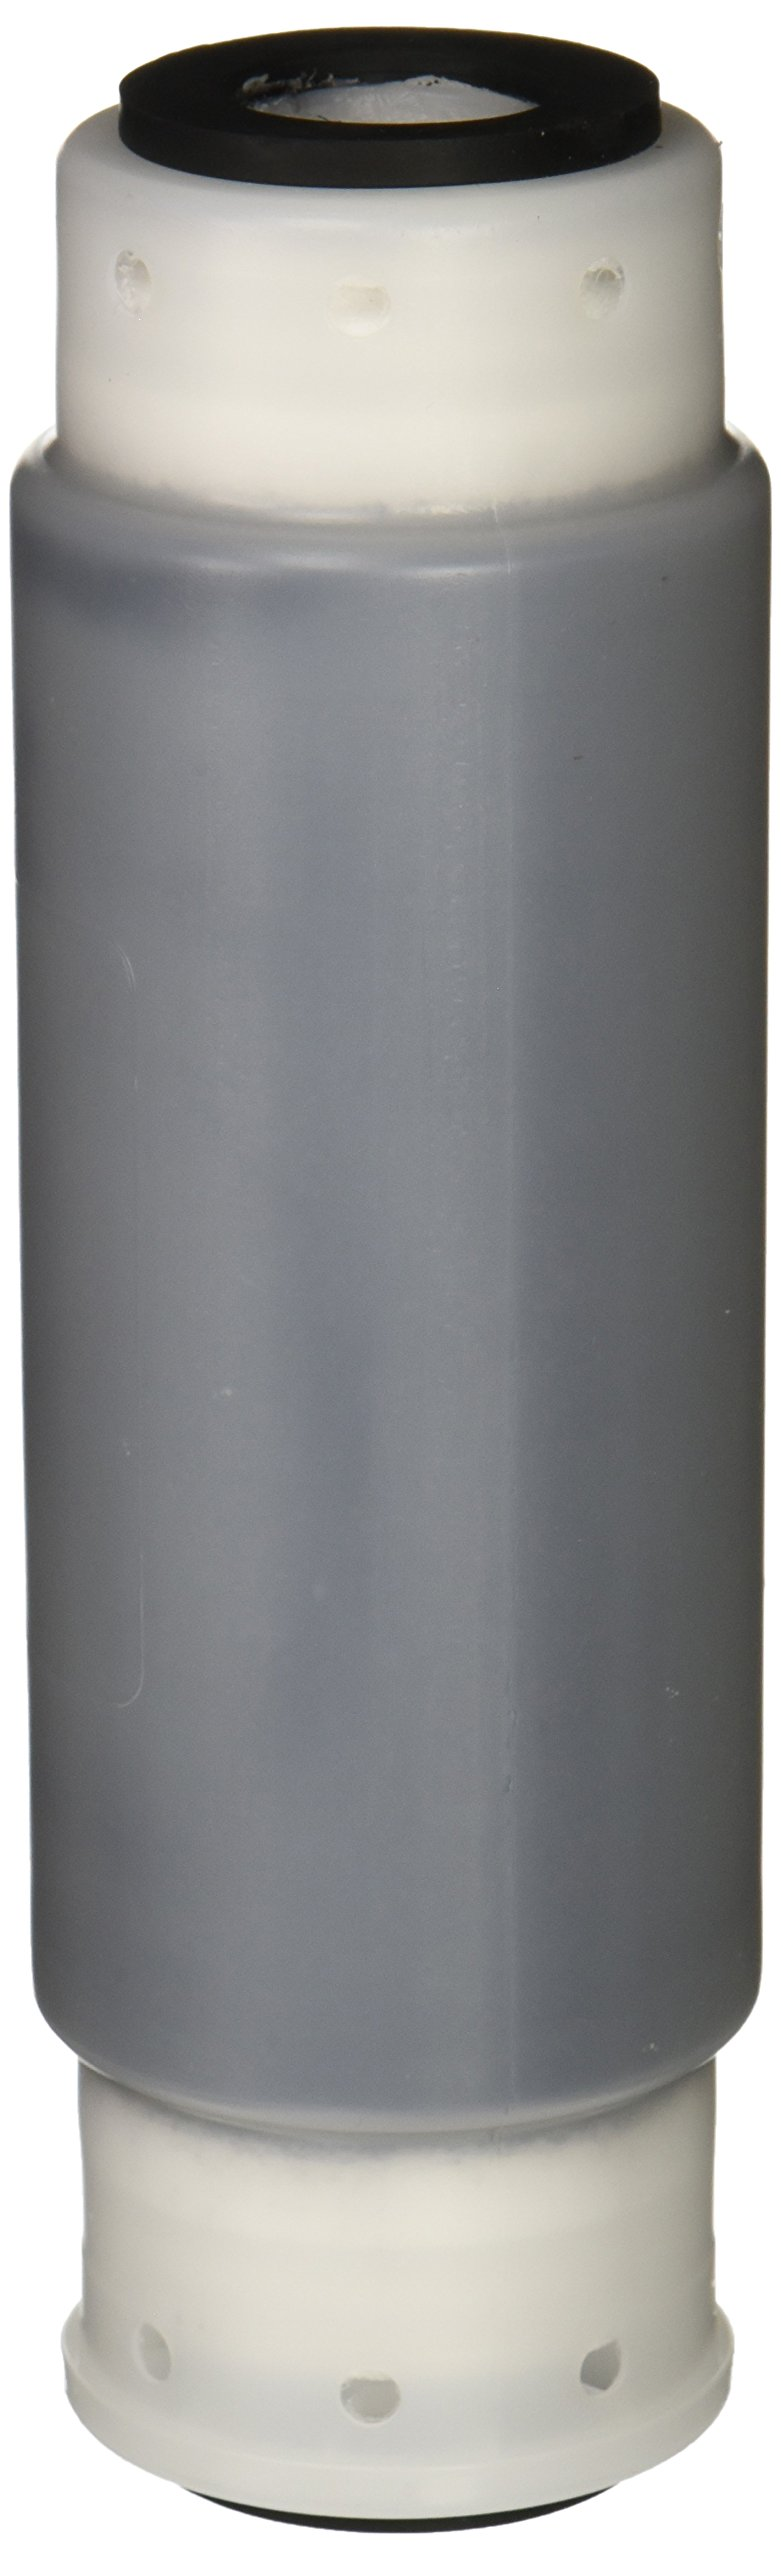 Cuno CFS117-S Whole House Filter Replacement Cartridge